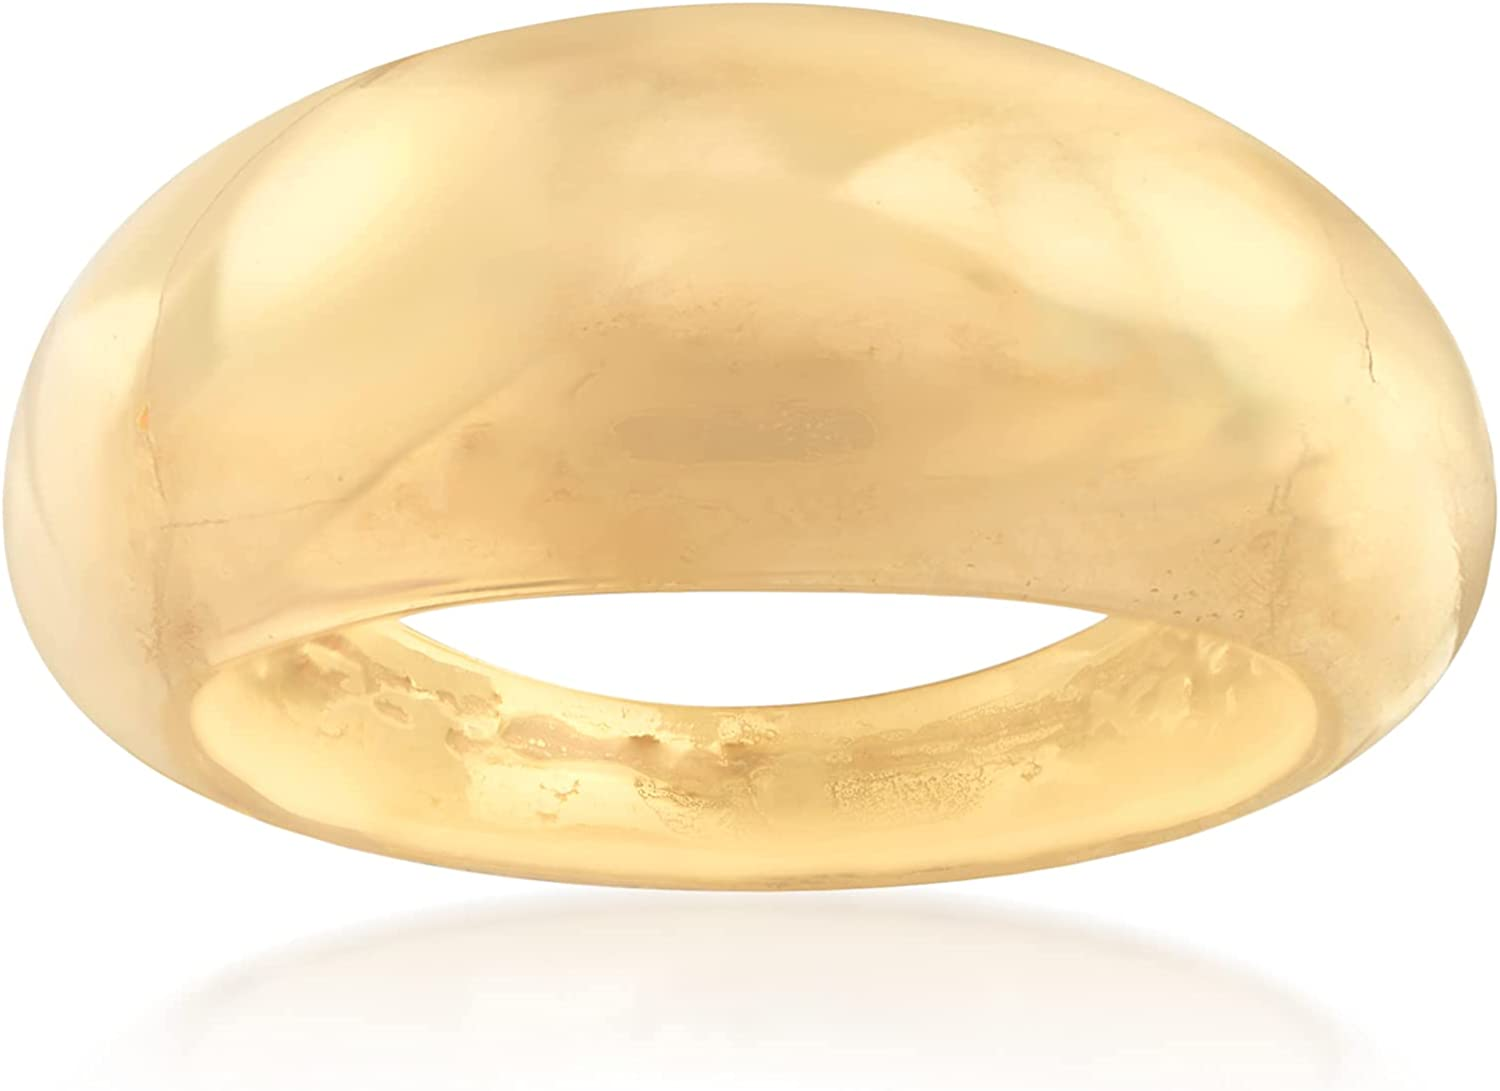 Ross-Simons Italian 18kt Yellow Gold Small Dome Ring